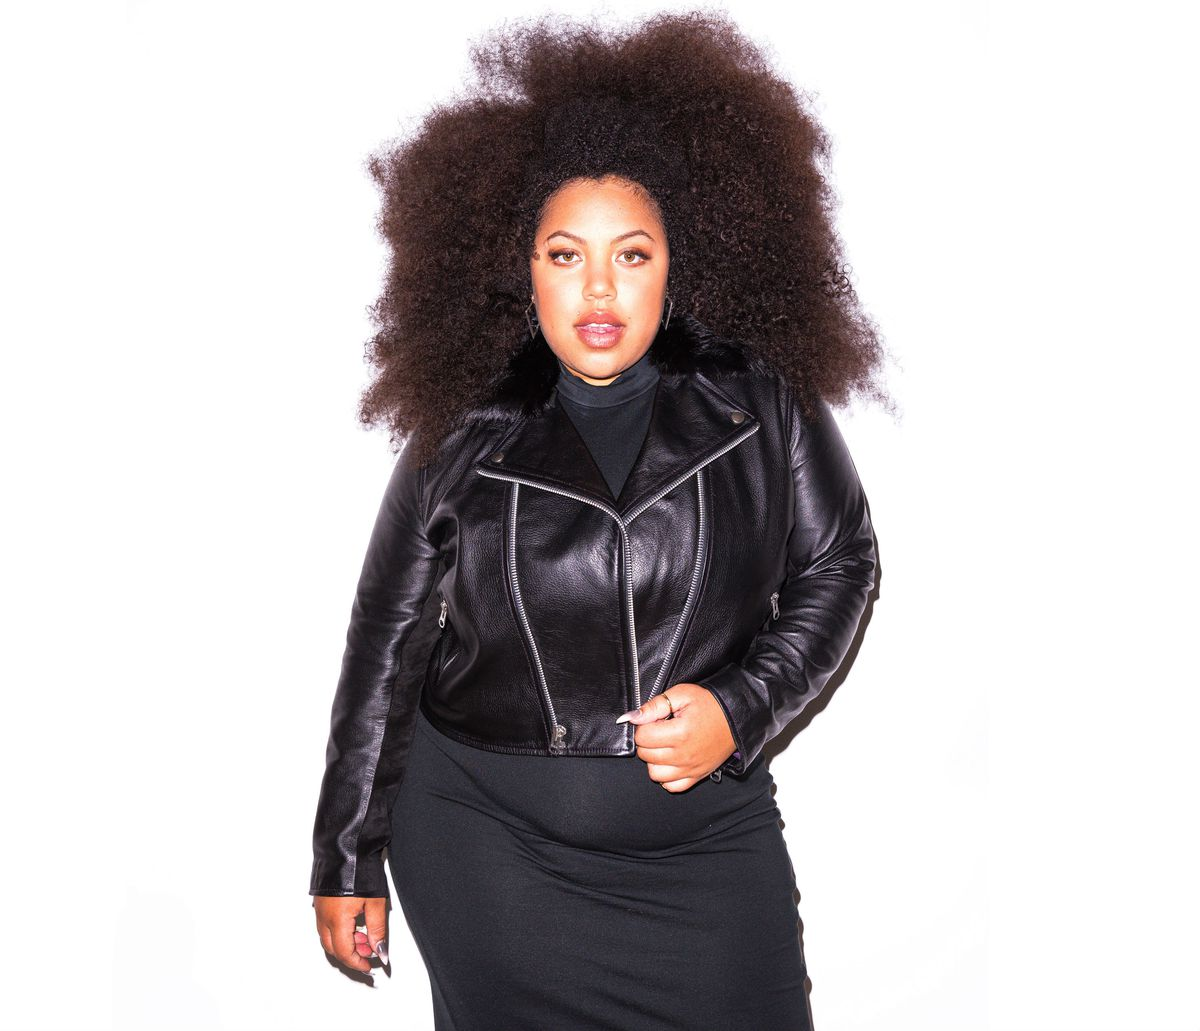 713f29803bb Meet the Designer Making the Best Plus-Size Leather Jackets - Racked